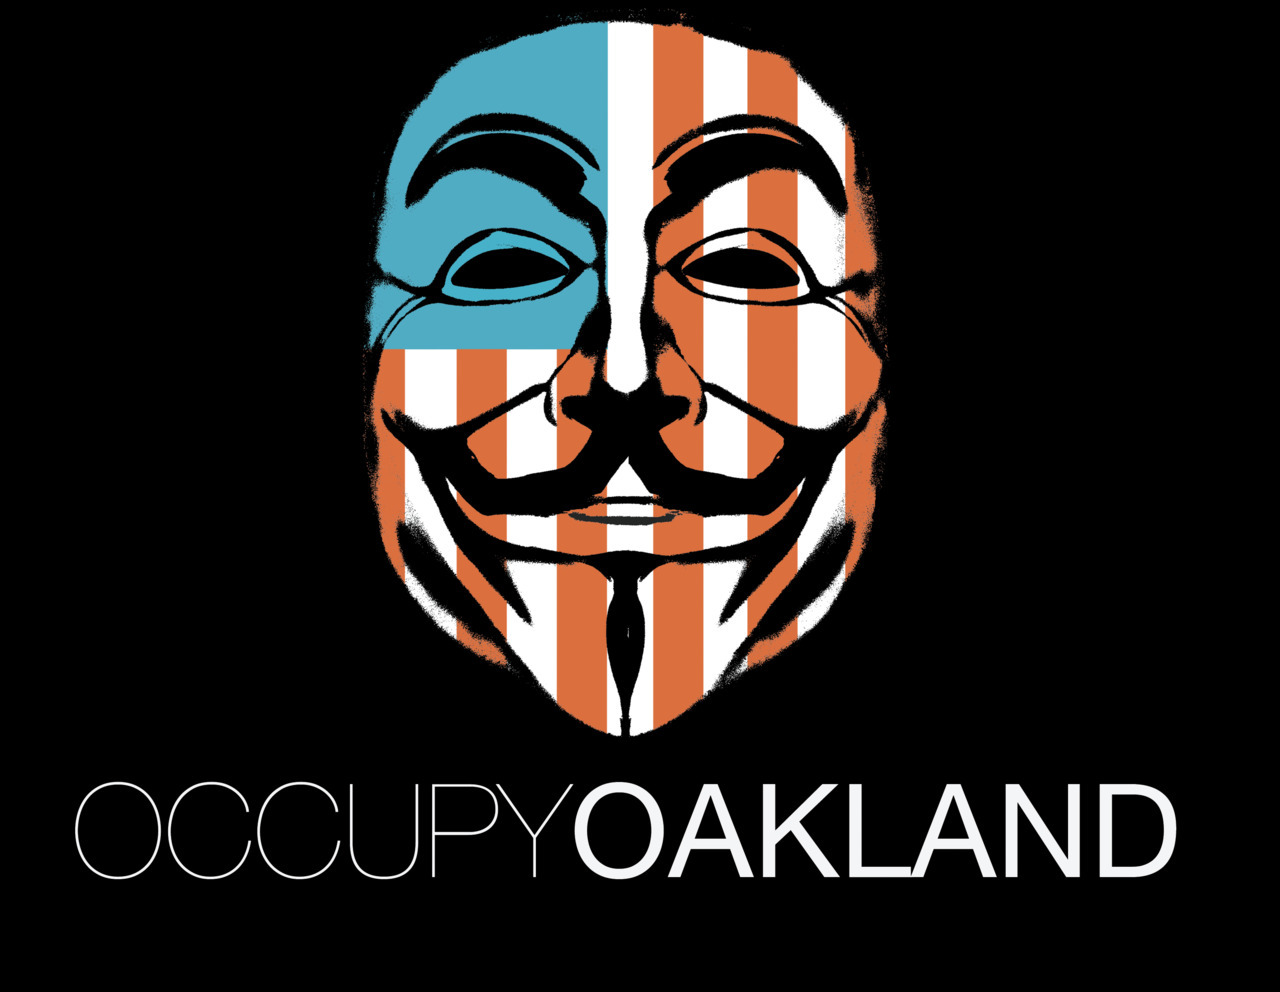 All is peaceful and positive tonight at Occupy Oakland